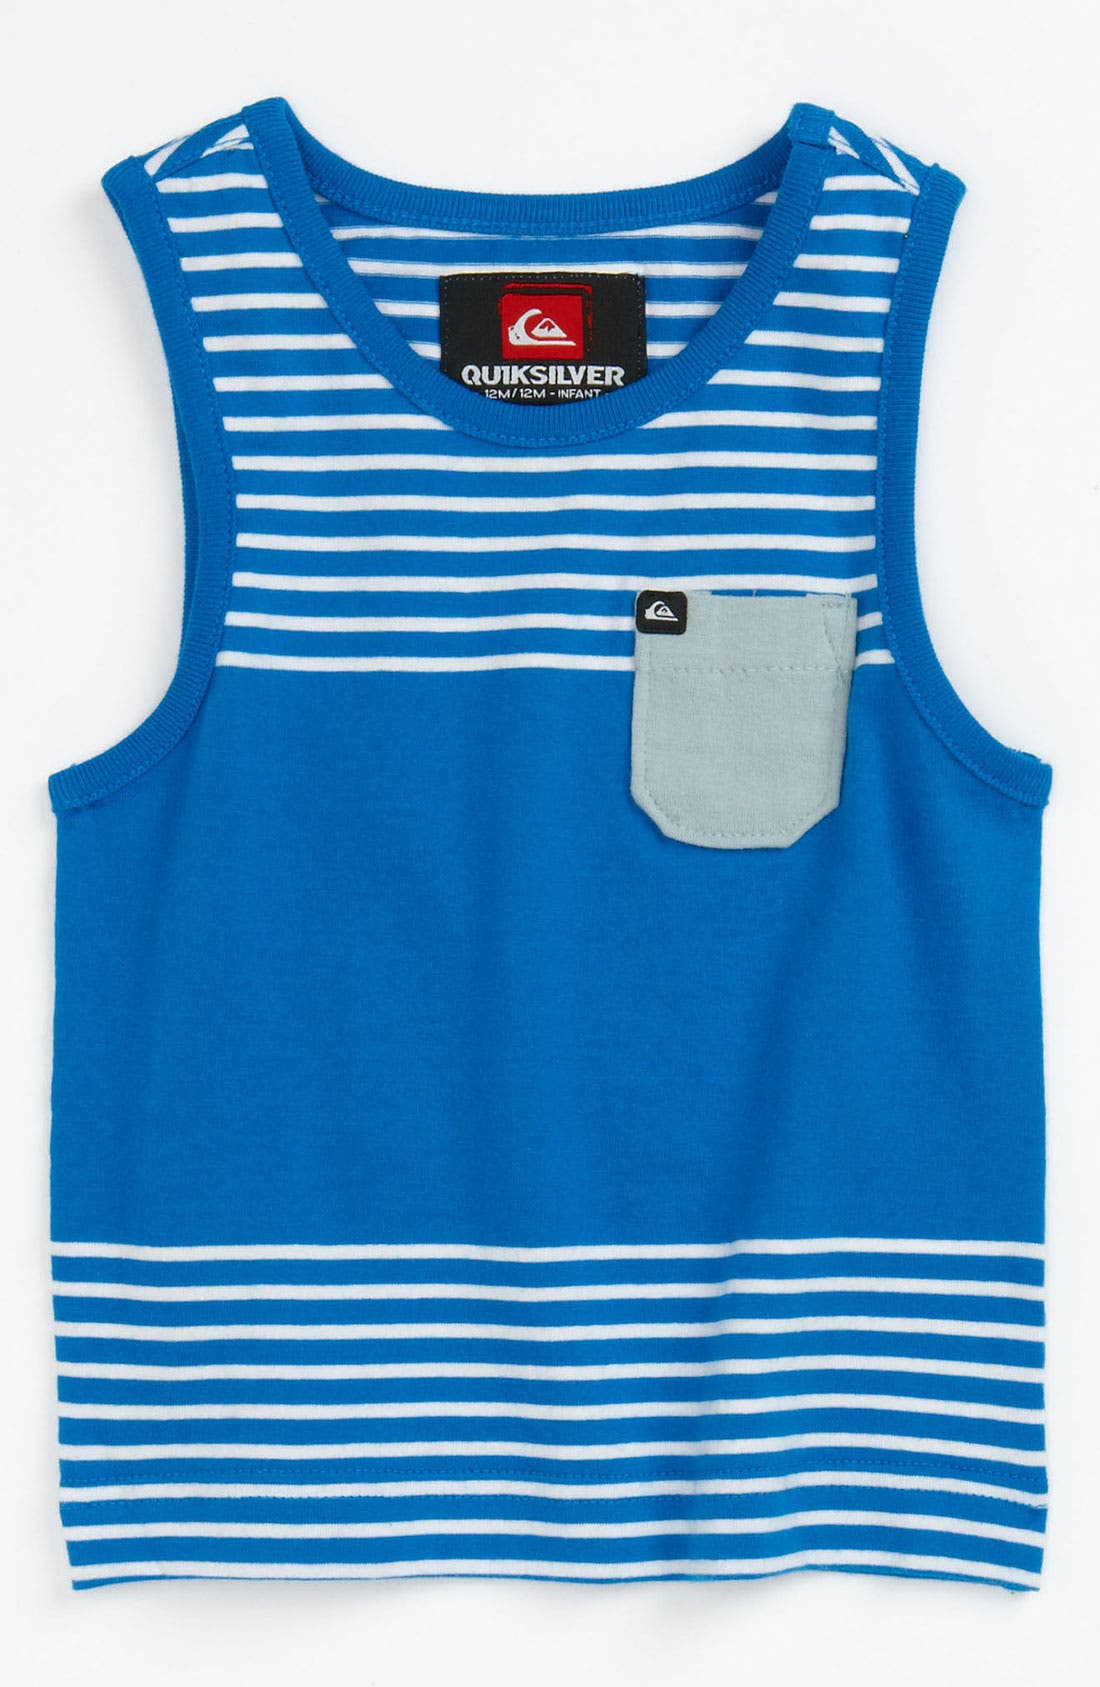 Main Image - Quiksilver 'Tropics' Tank Top (Infant)